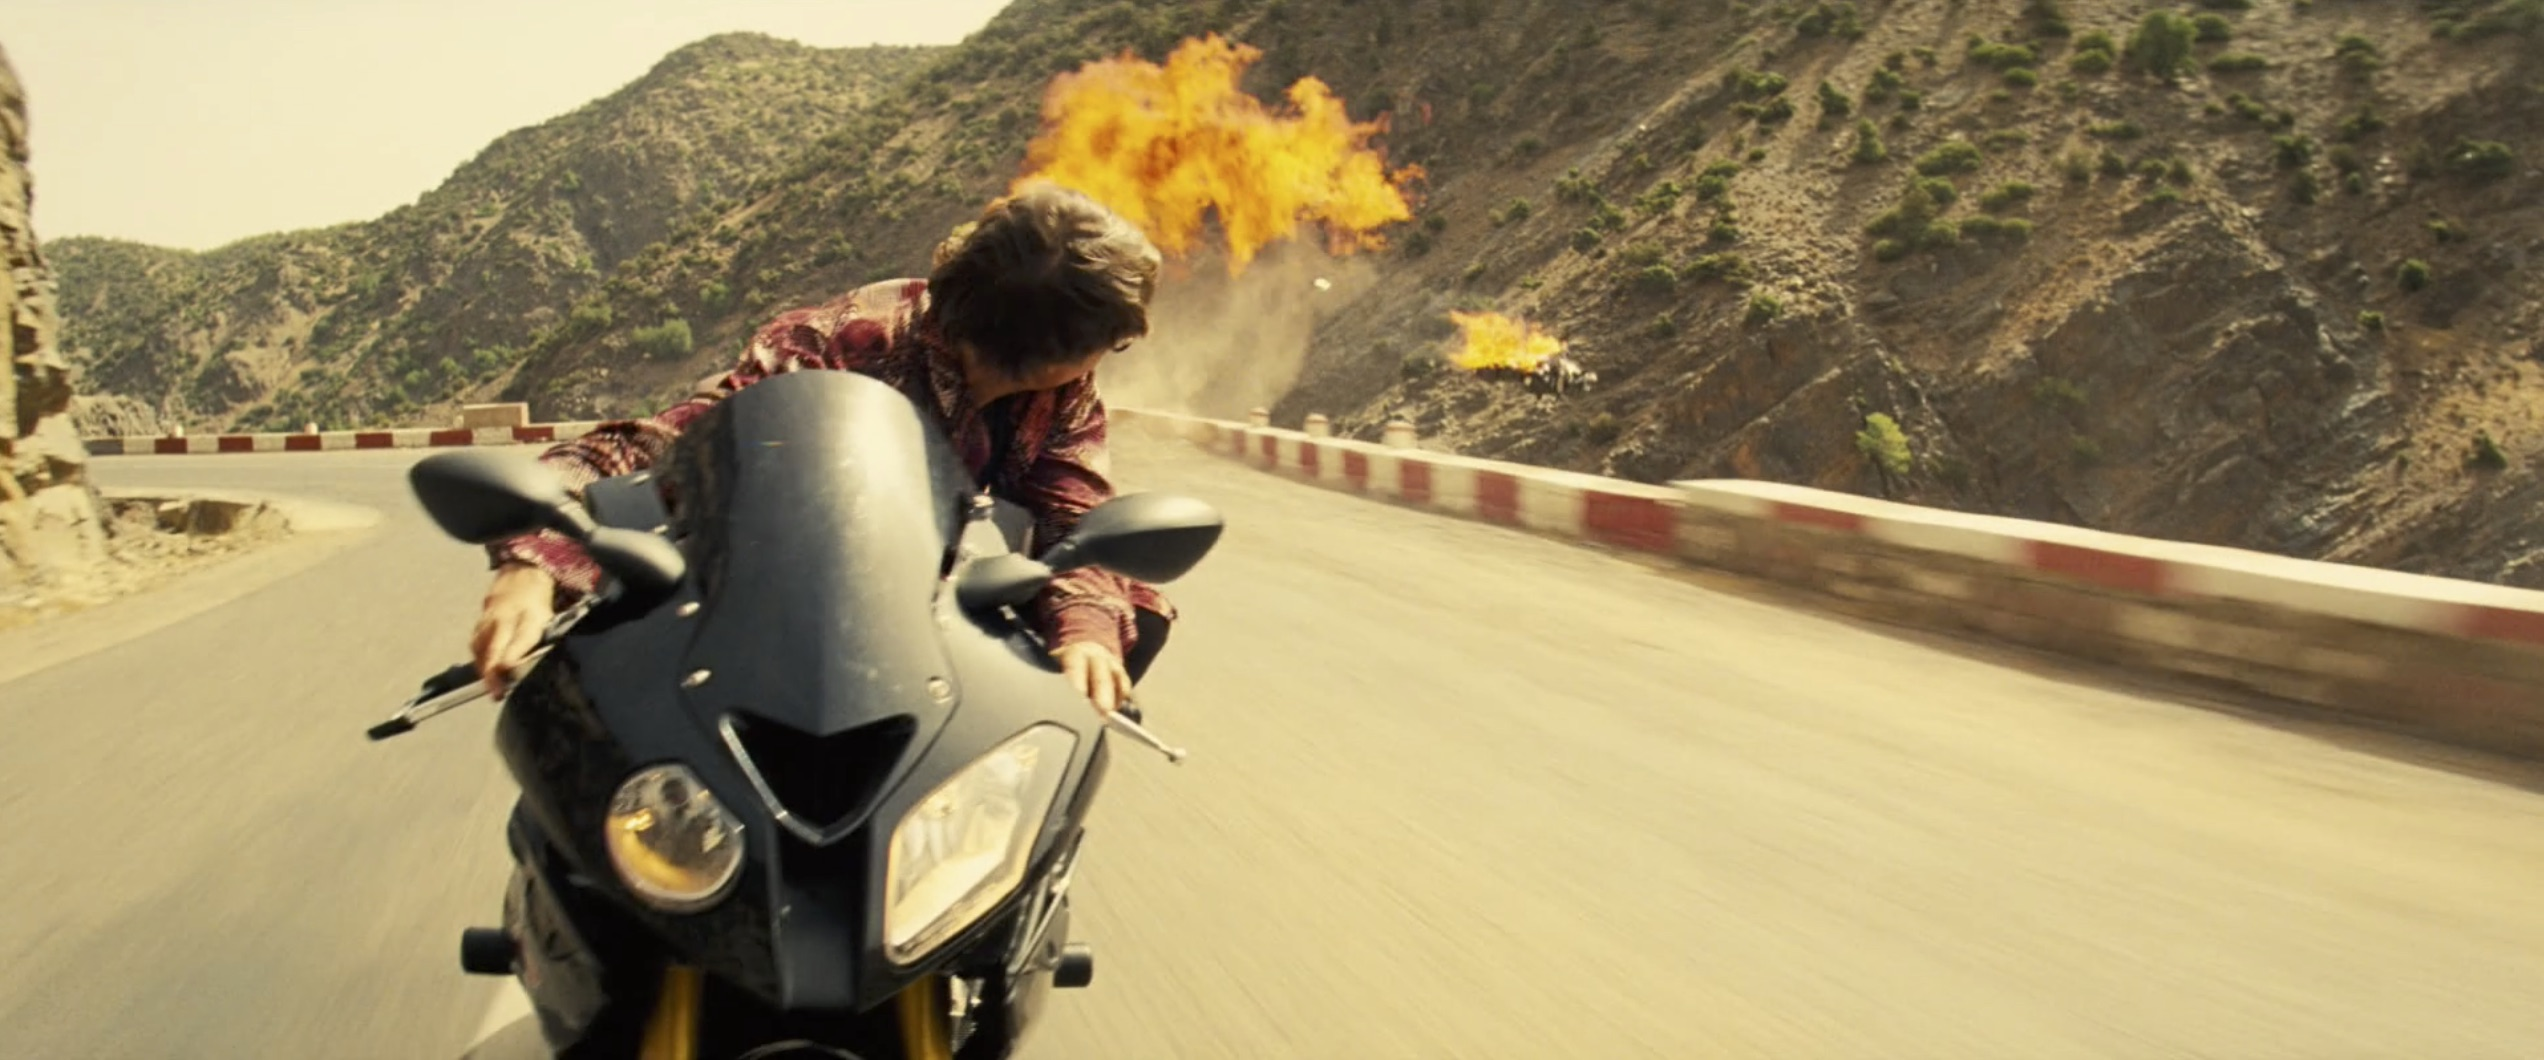 Mission Impossible: Rogue Nation tom cruise motorcycle explosion